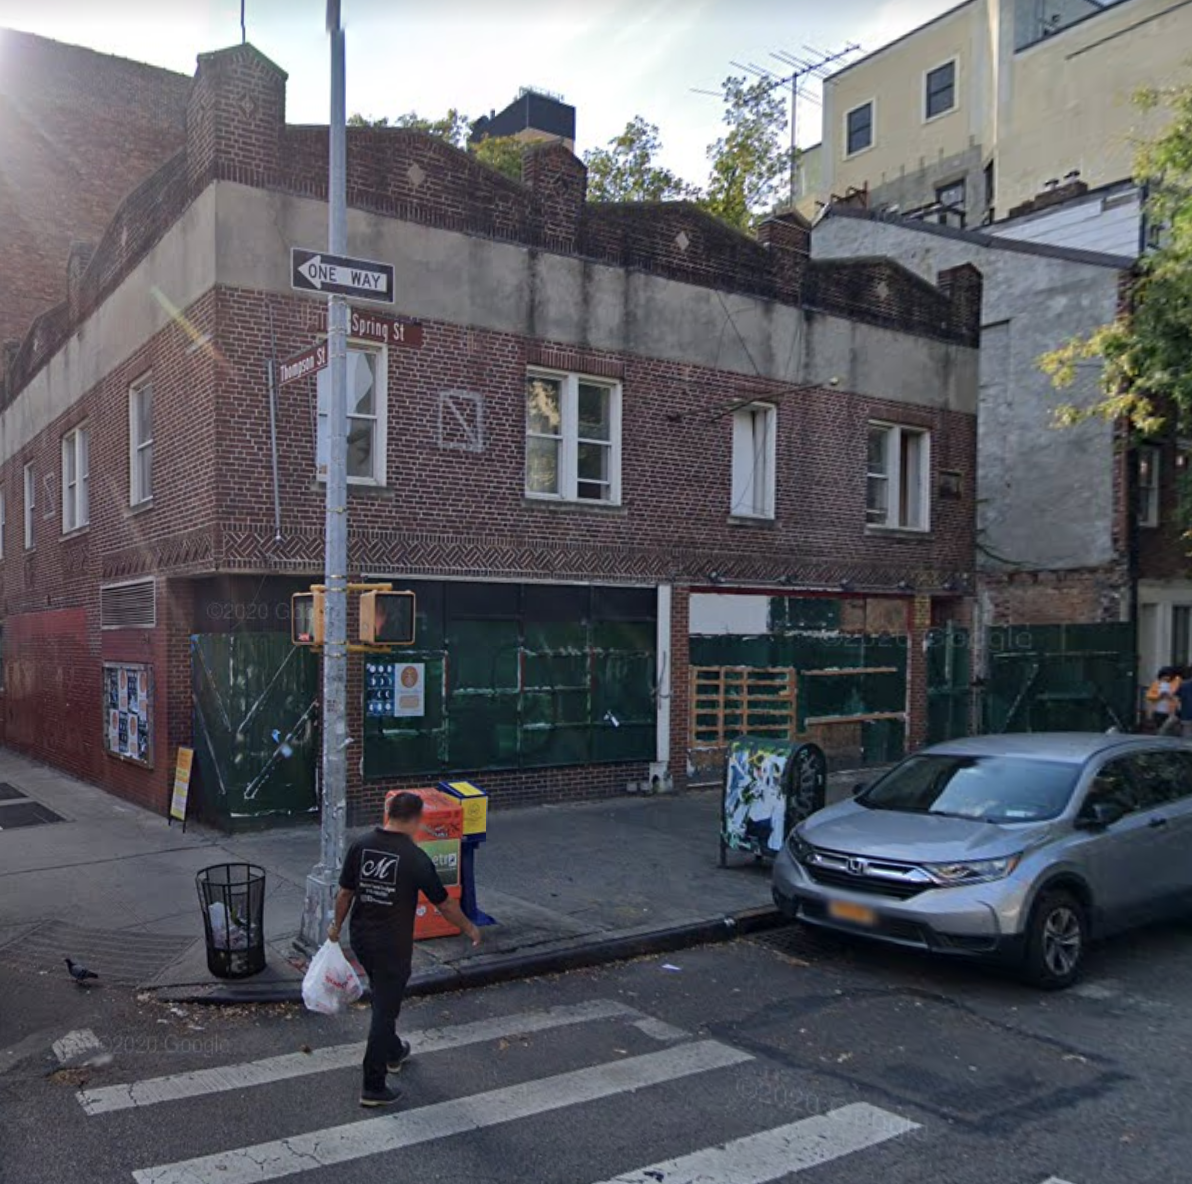 182 Spring Street circa 2019, a two story brick building that is vacant